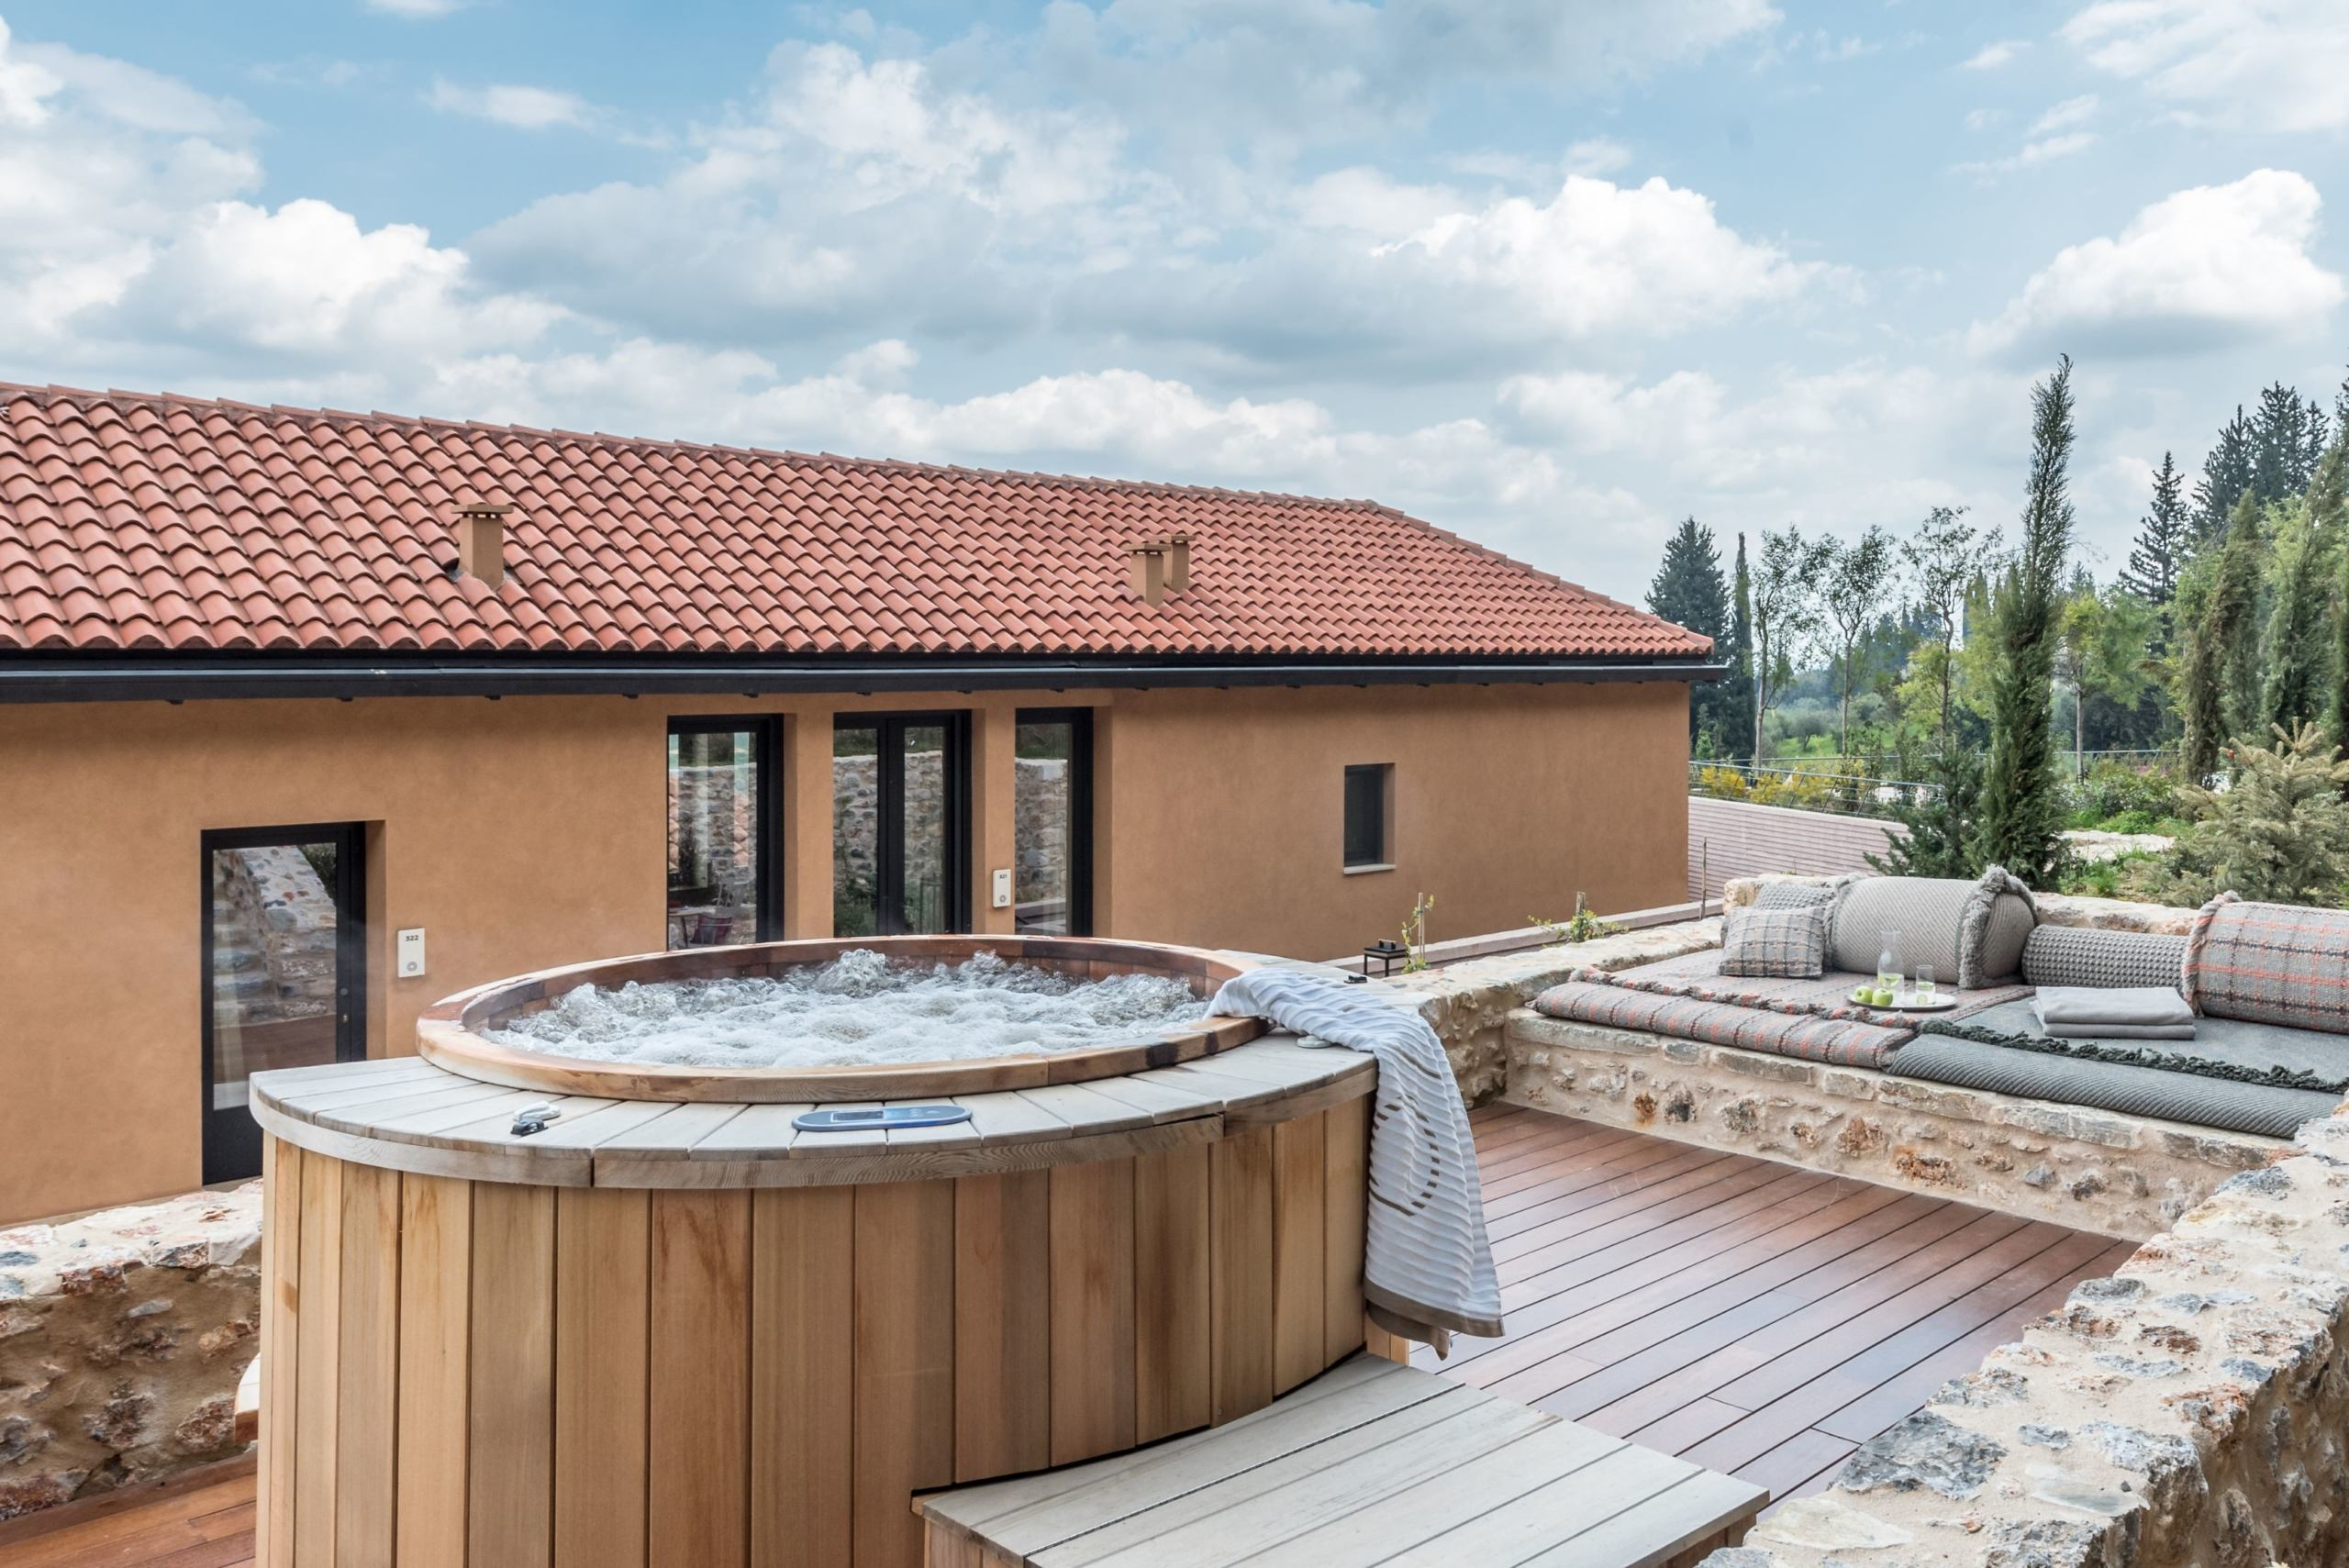 Outdoor hot tub and decked area of a byzantium suite at Euphoria Greece